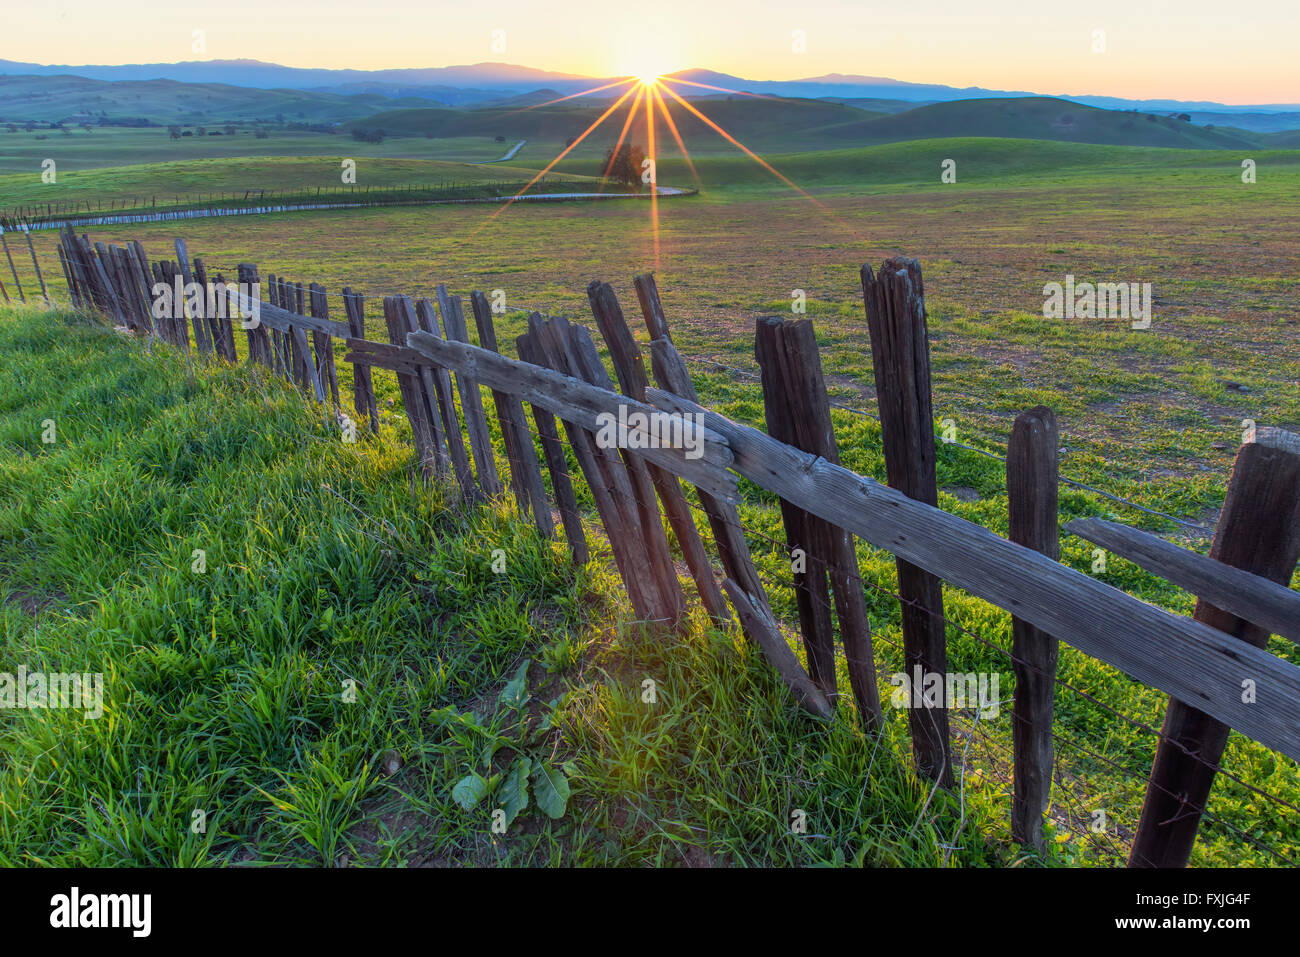 Rural Sunstar with Fence Line - Stock Image